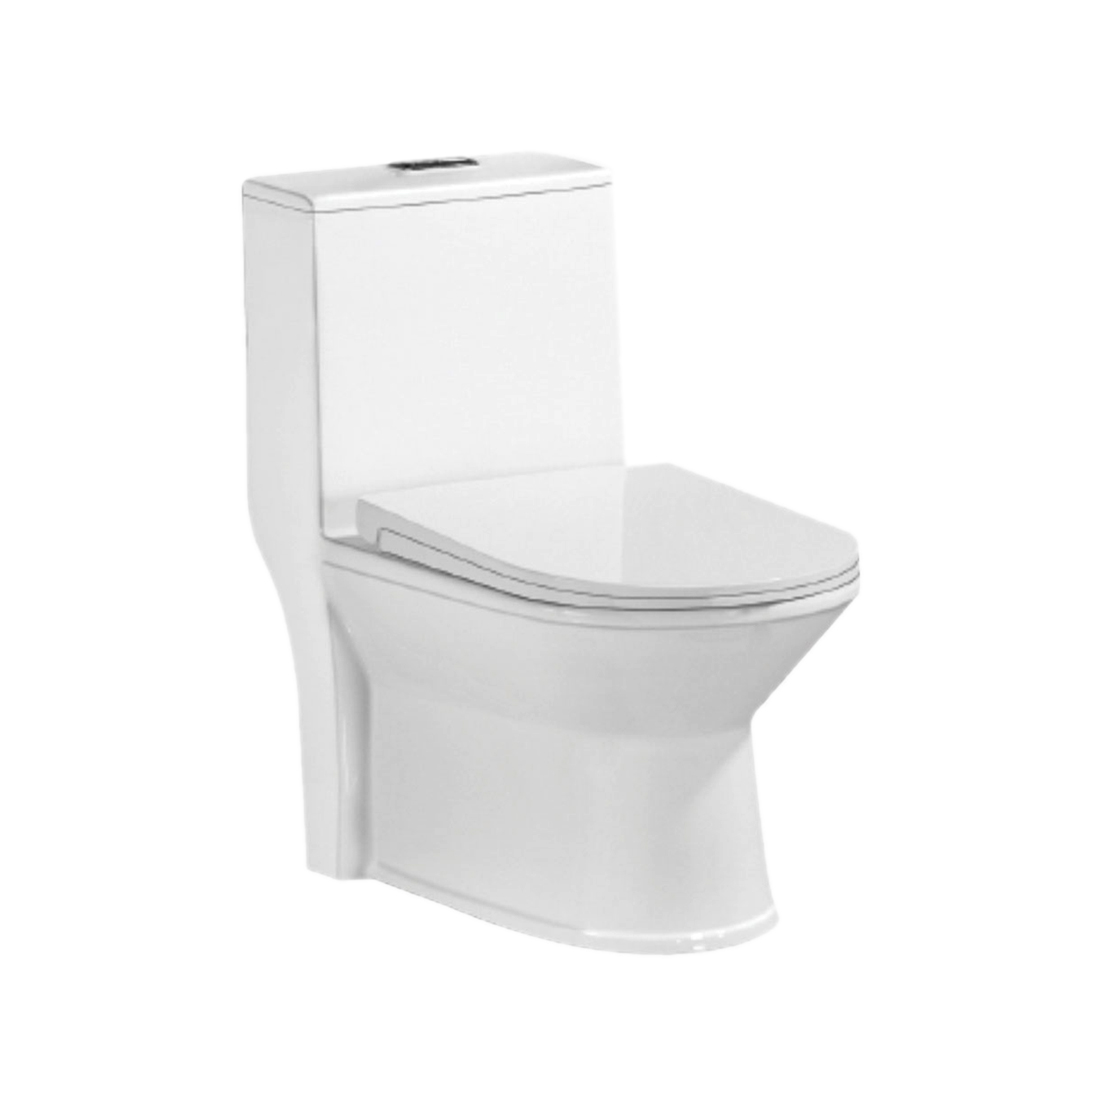 Kerovit Lopez KB639 Siphonic Single Piece European Rimfree Water Closet With Seat Cover and Nuca Fitting